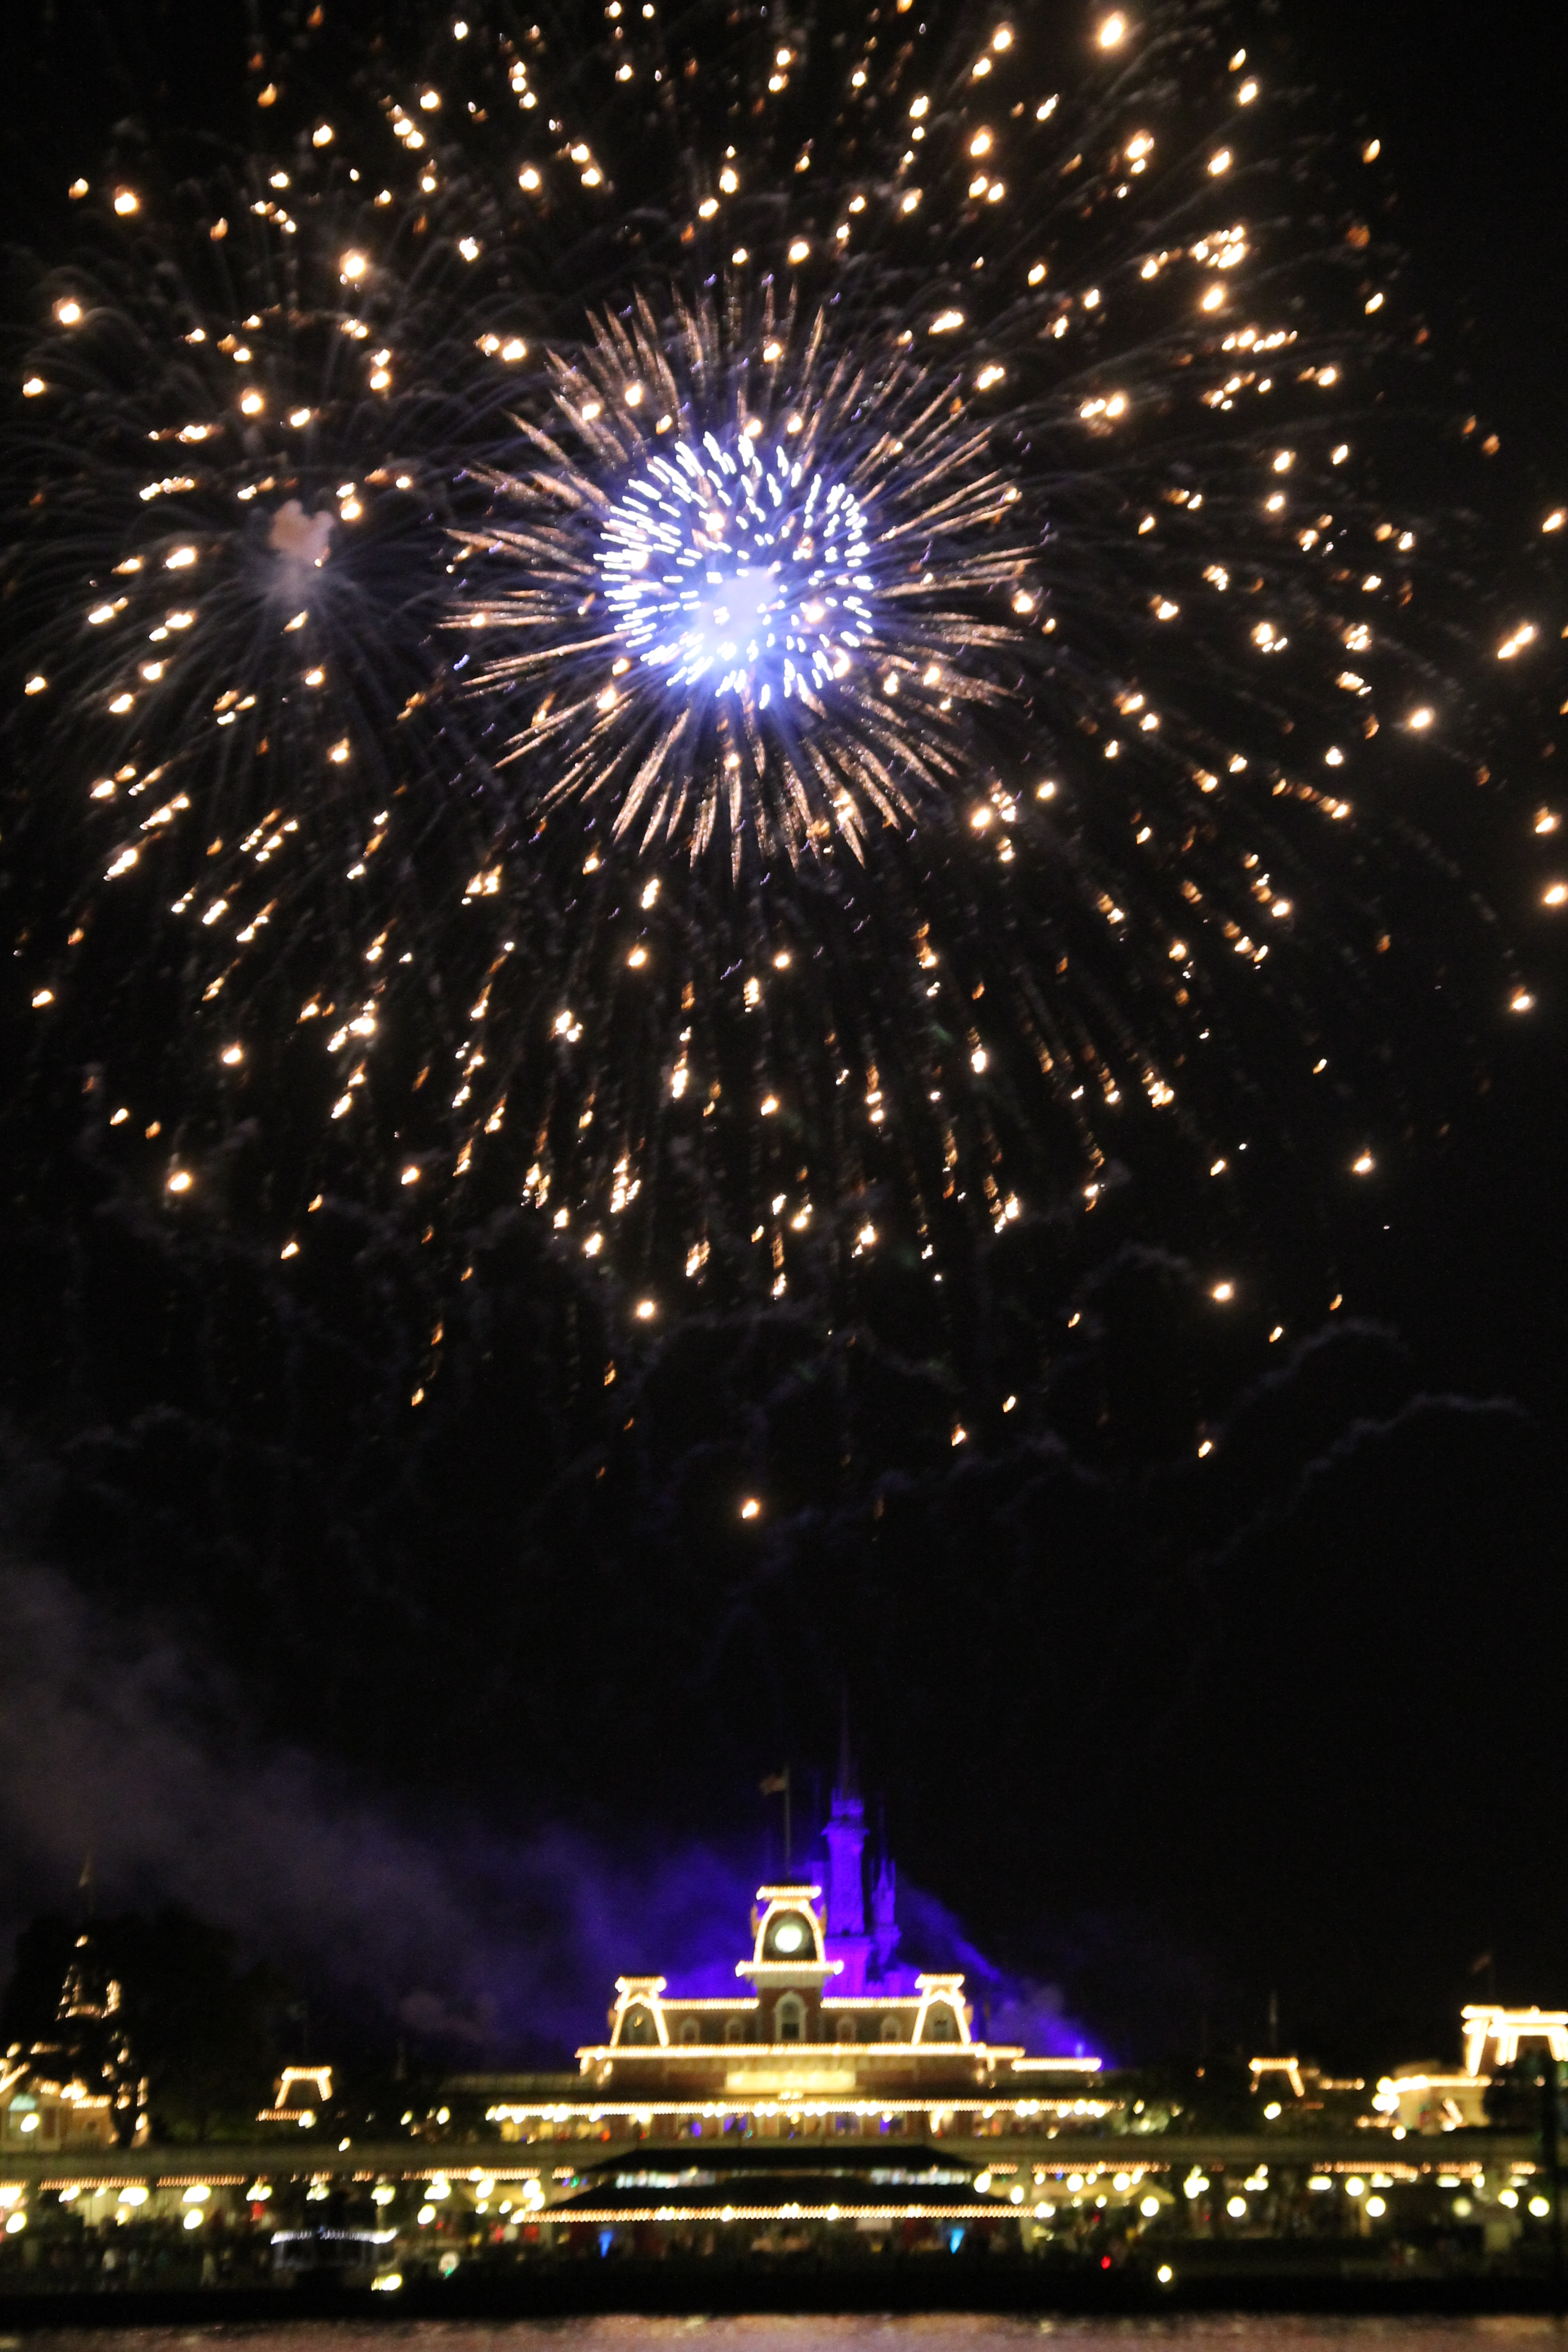 Disney Mamas Argh Matey If It Is Fireworks Ye Seek Look No Further Than The Pirates And Pals